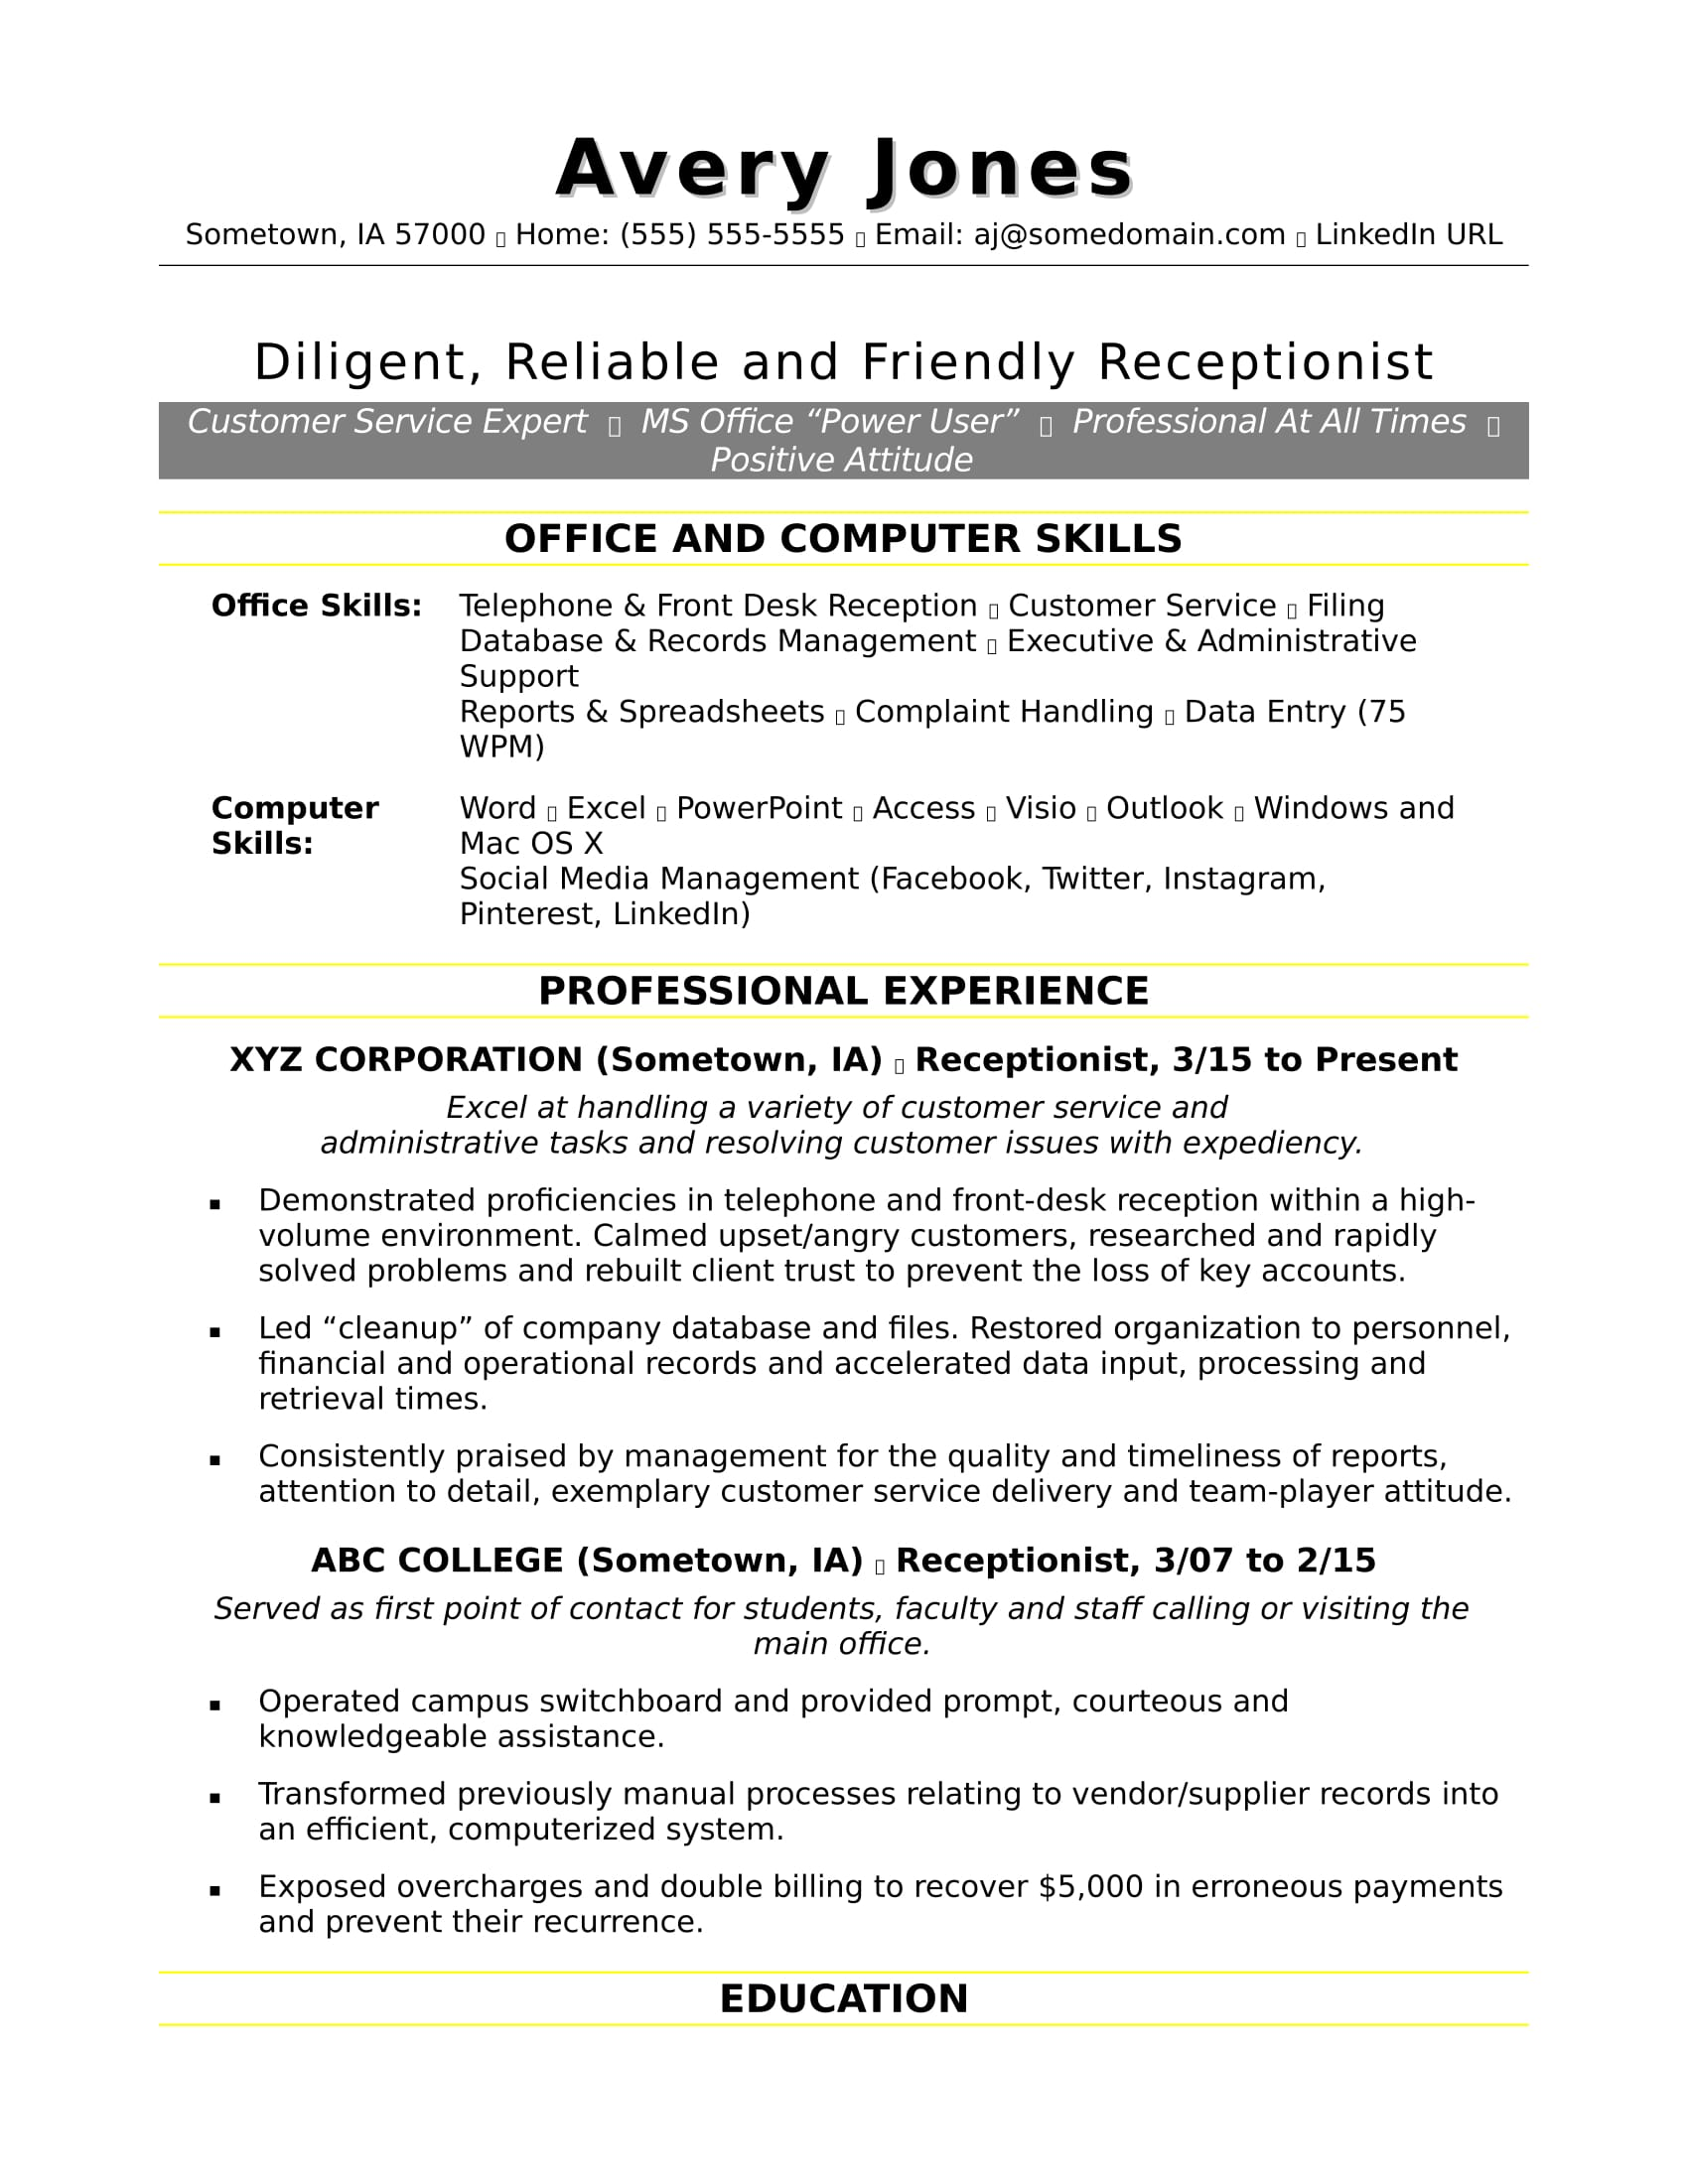 receptionist resume sample monster no experience bank format for freshers rating tool the Resume No Experience Receptionist Resume